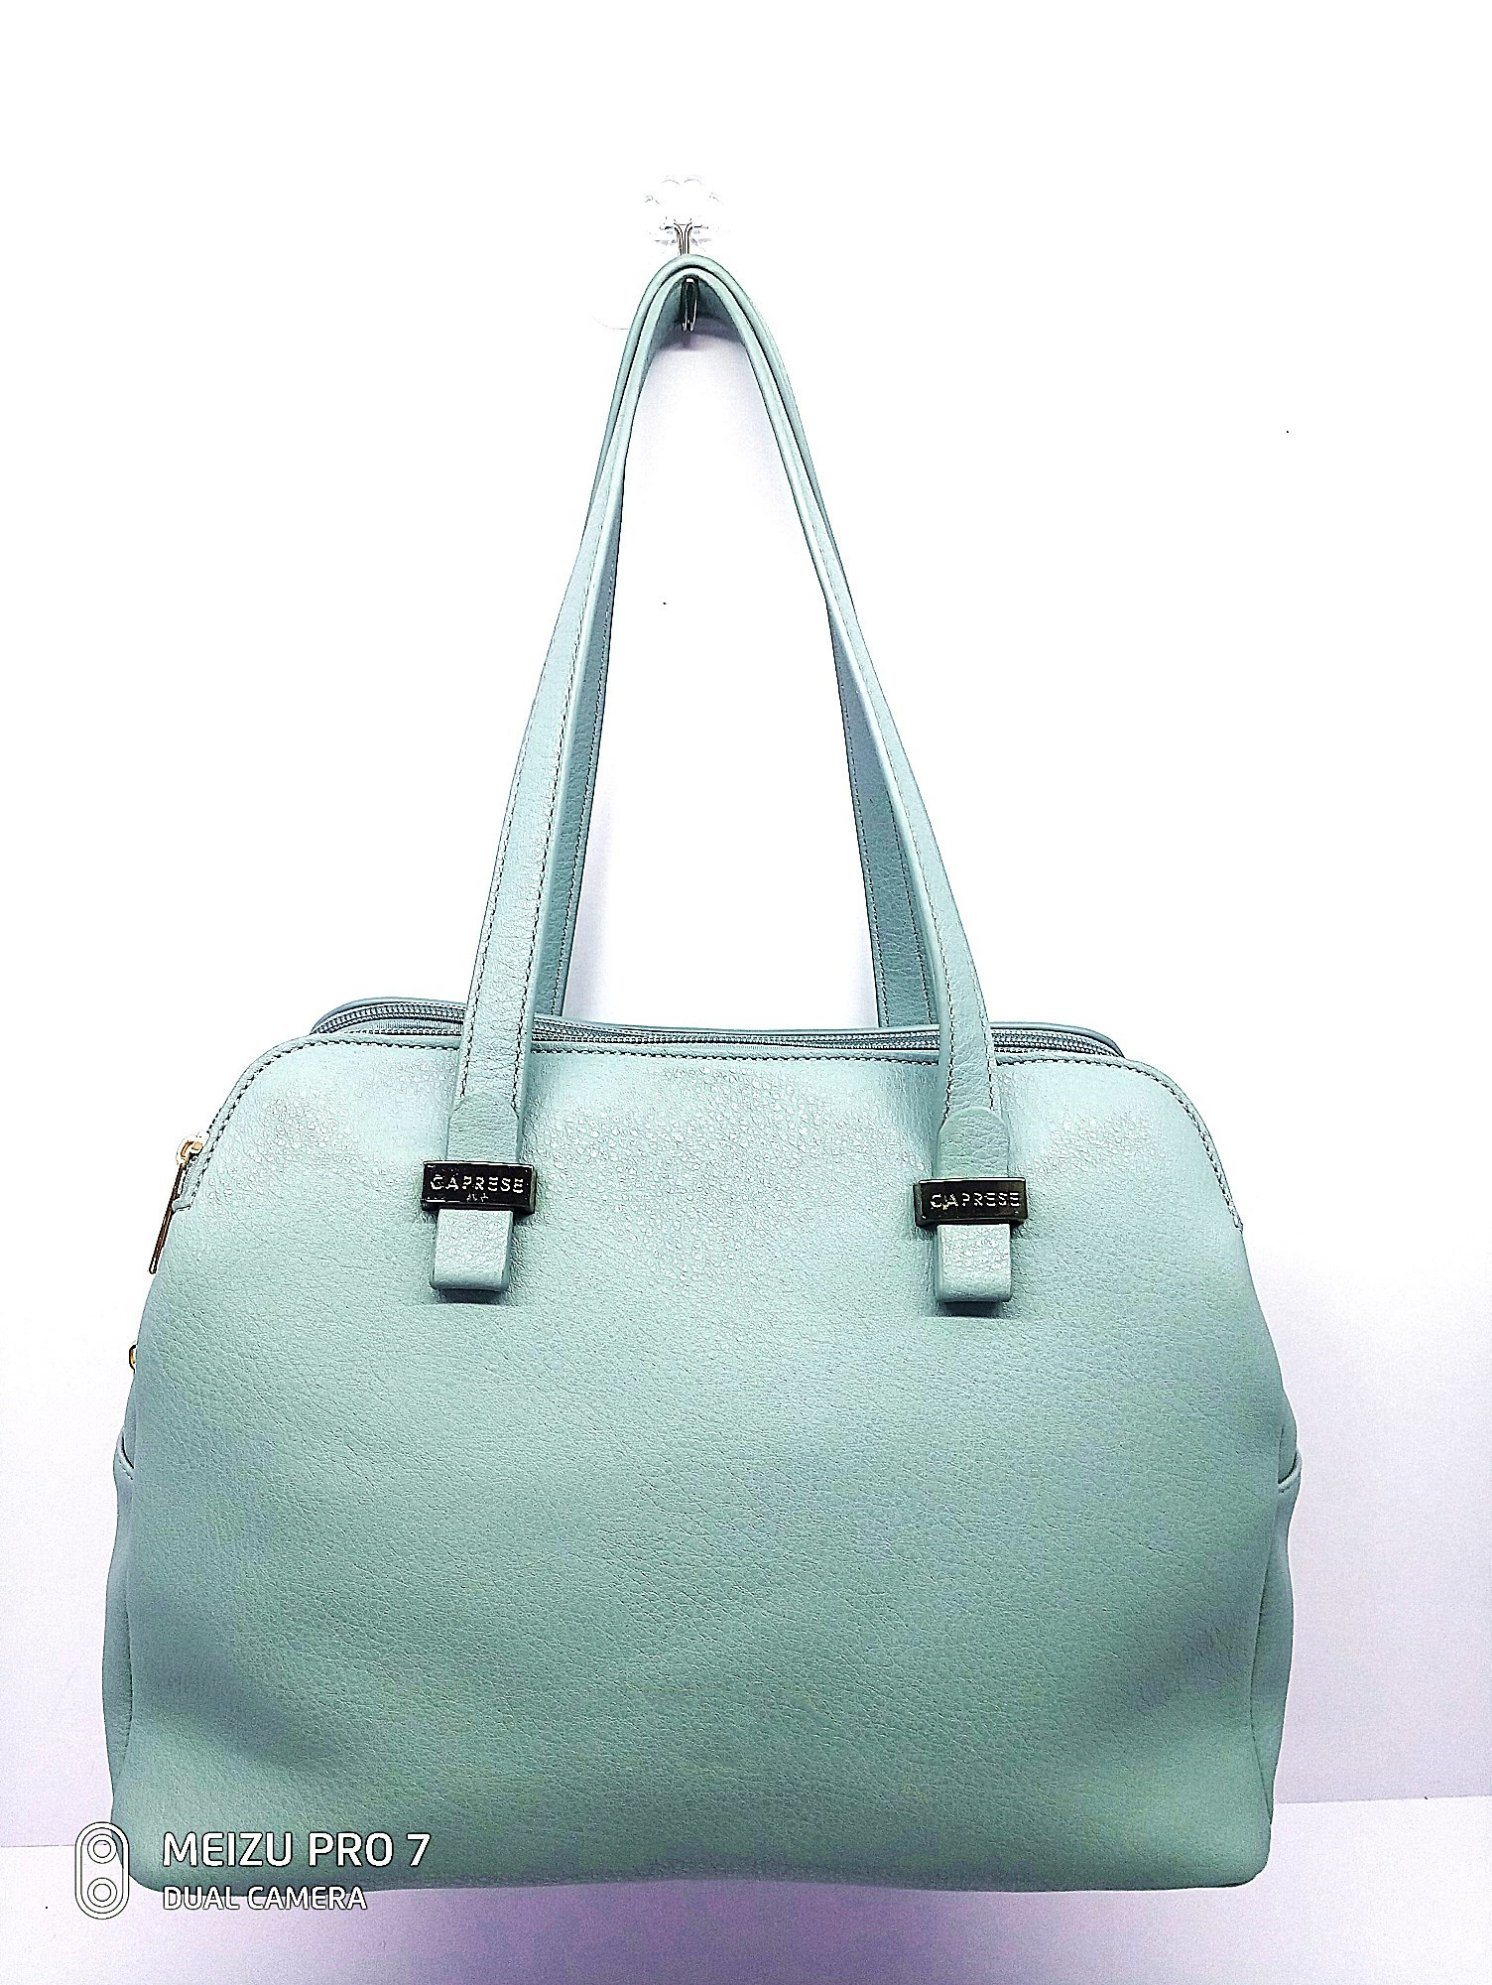 71eec8b62 Designer Bags Wholesale China